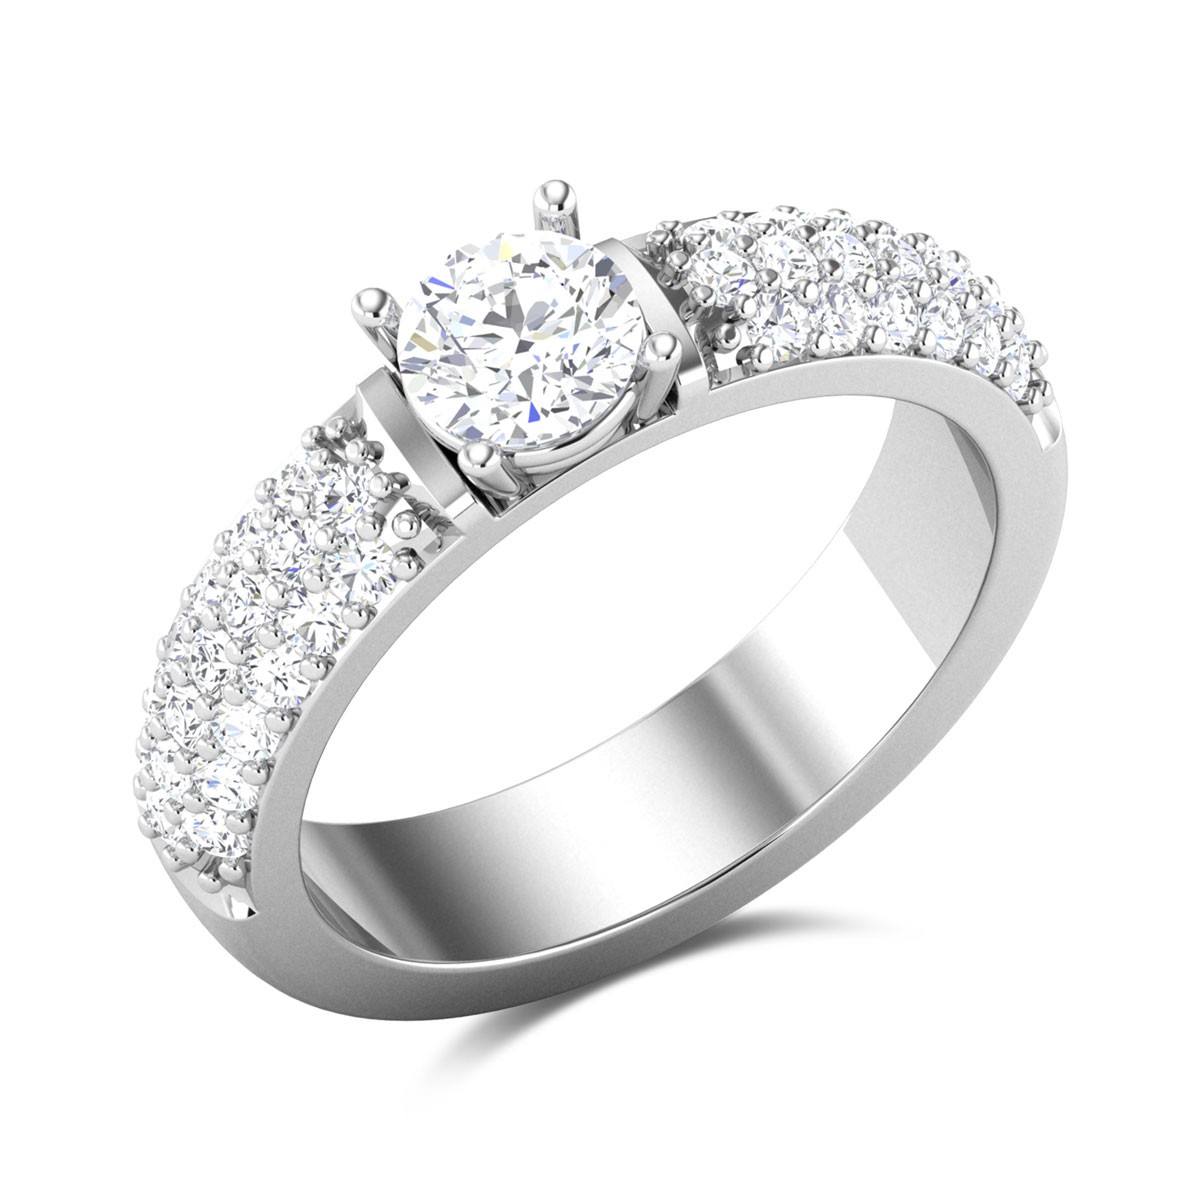 Intense Adora Band Solitaire Ring